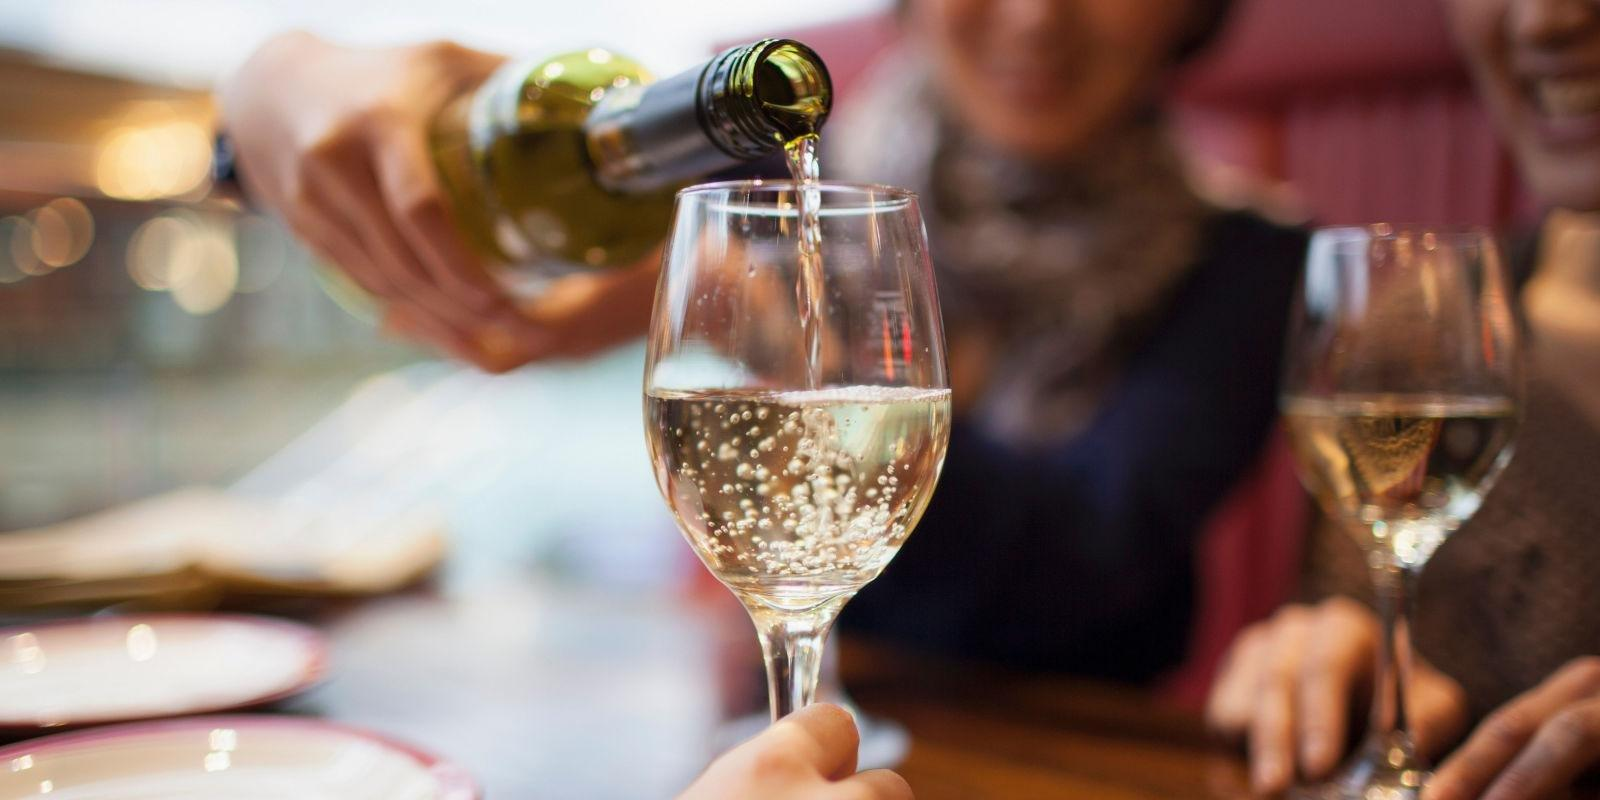 Can I Have A Glass Of Wine While Taking Metformin?